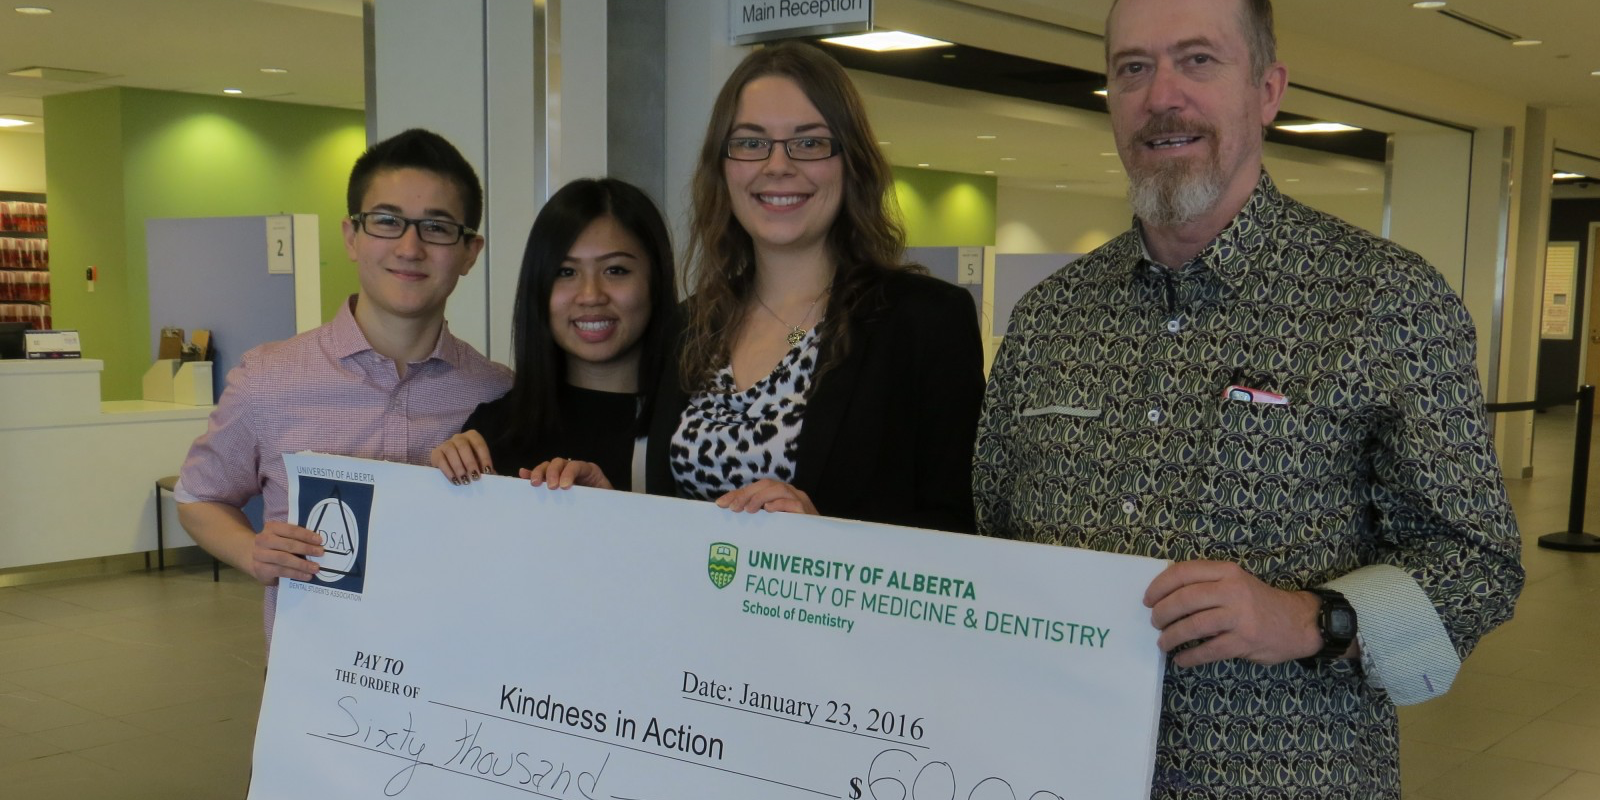 First year School of Dentistry students Nicholas Churchill, Brenda Pham and Emily Ervin present a $60,000 cheque to Kindness in Action vice-president Dave Maskell.